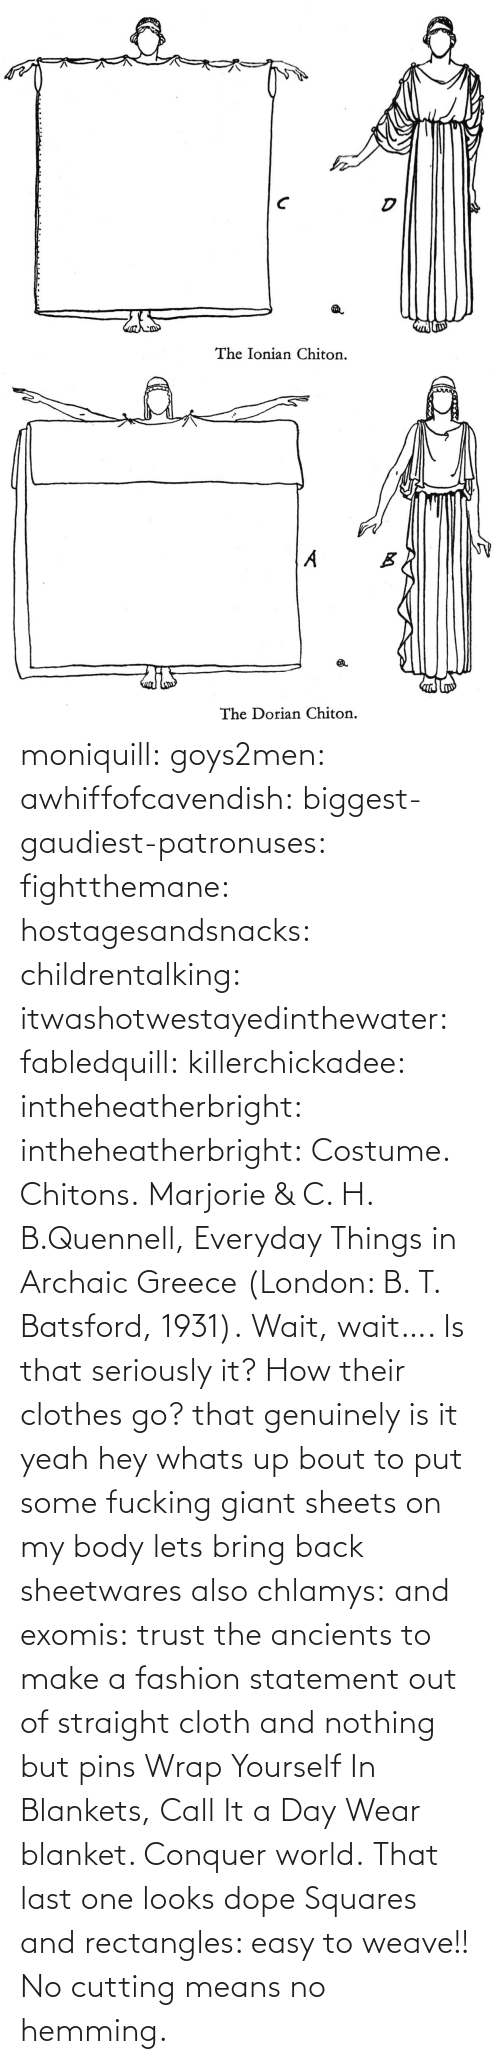 last one: moniquill: goys2men:  awhiffofcavendish:  biggest-gaudiest-patronuses:  fightthemane:  hostagesandsnacks:  childrentalking:  itwashotwestayedinthewater:  fabledquill:  killerchickadee:  intheheatherbright:  intheheatherbright:  Costume. Chitons.  Marjorie & C. H. B.Quennell, Everyday Things in Archaic Greece (London: B. T. Batsford, 1931).  Wait, wait…. Is that seriously it? How their clothes go?  that genuinely is it  yeah hey whats up bout to put some fucking giant sheets on my body  lets bring back sheetwares  also chlamys: and exomis:  trust the ancients to make a fashion statement out of straight cloth and nothing but pins  Wrap Yourself In Blankets, Call It a Day  Wear blanket. Conquer world.   That last one looks dope    Squares and rectangles: easy to weave!! No cutting means no hemming.